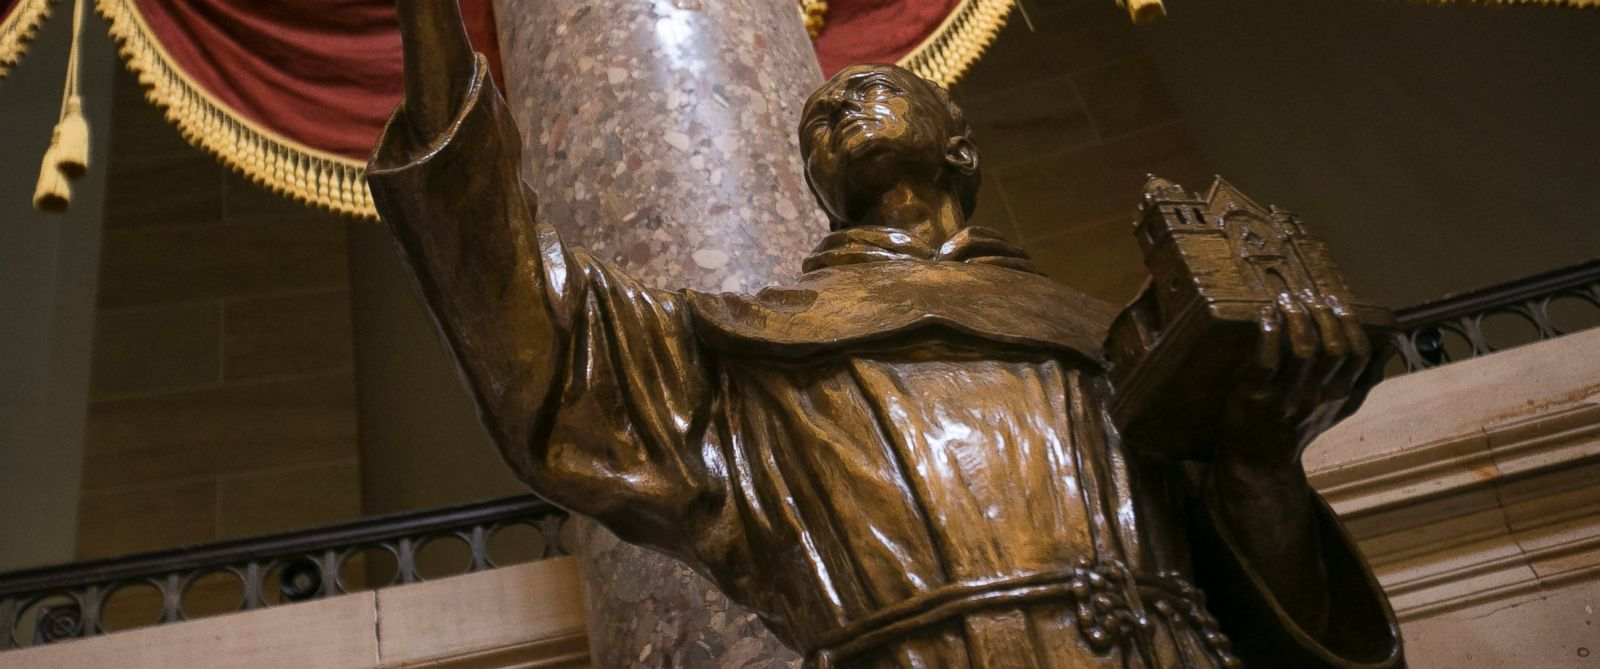 PHOTO: The statue of Junipero Serra stands in Statuary Hall in the U.S. Capitol building in Washington on Monday, Sept. 21, 2015.